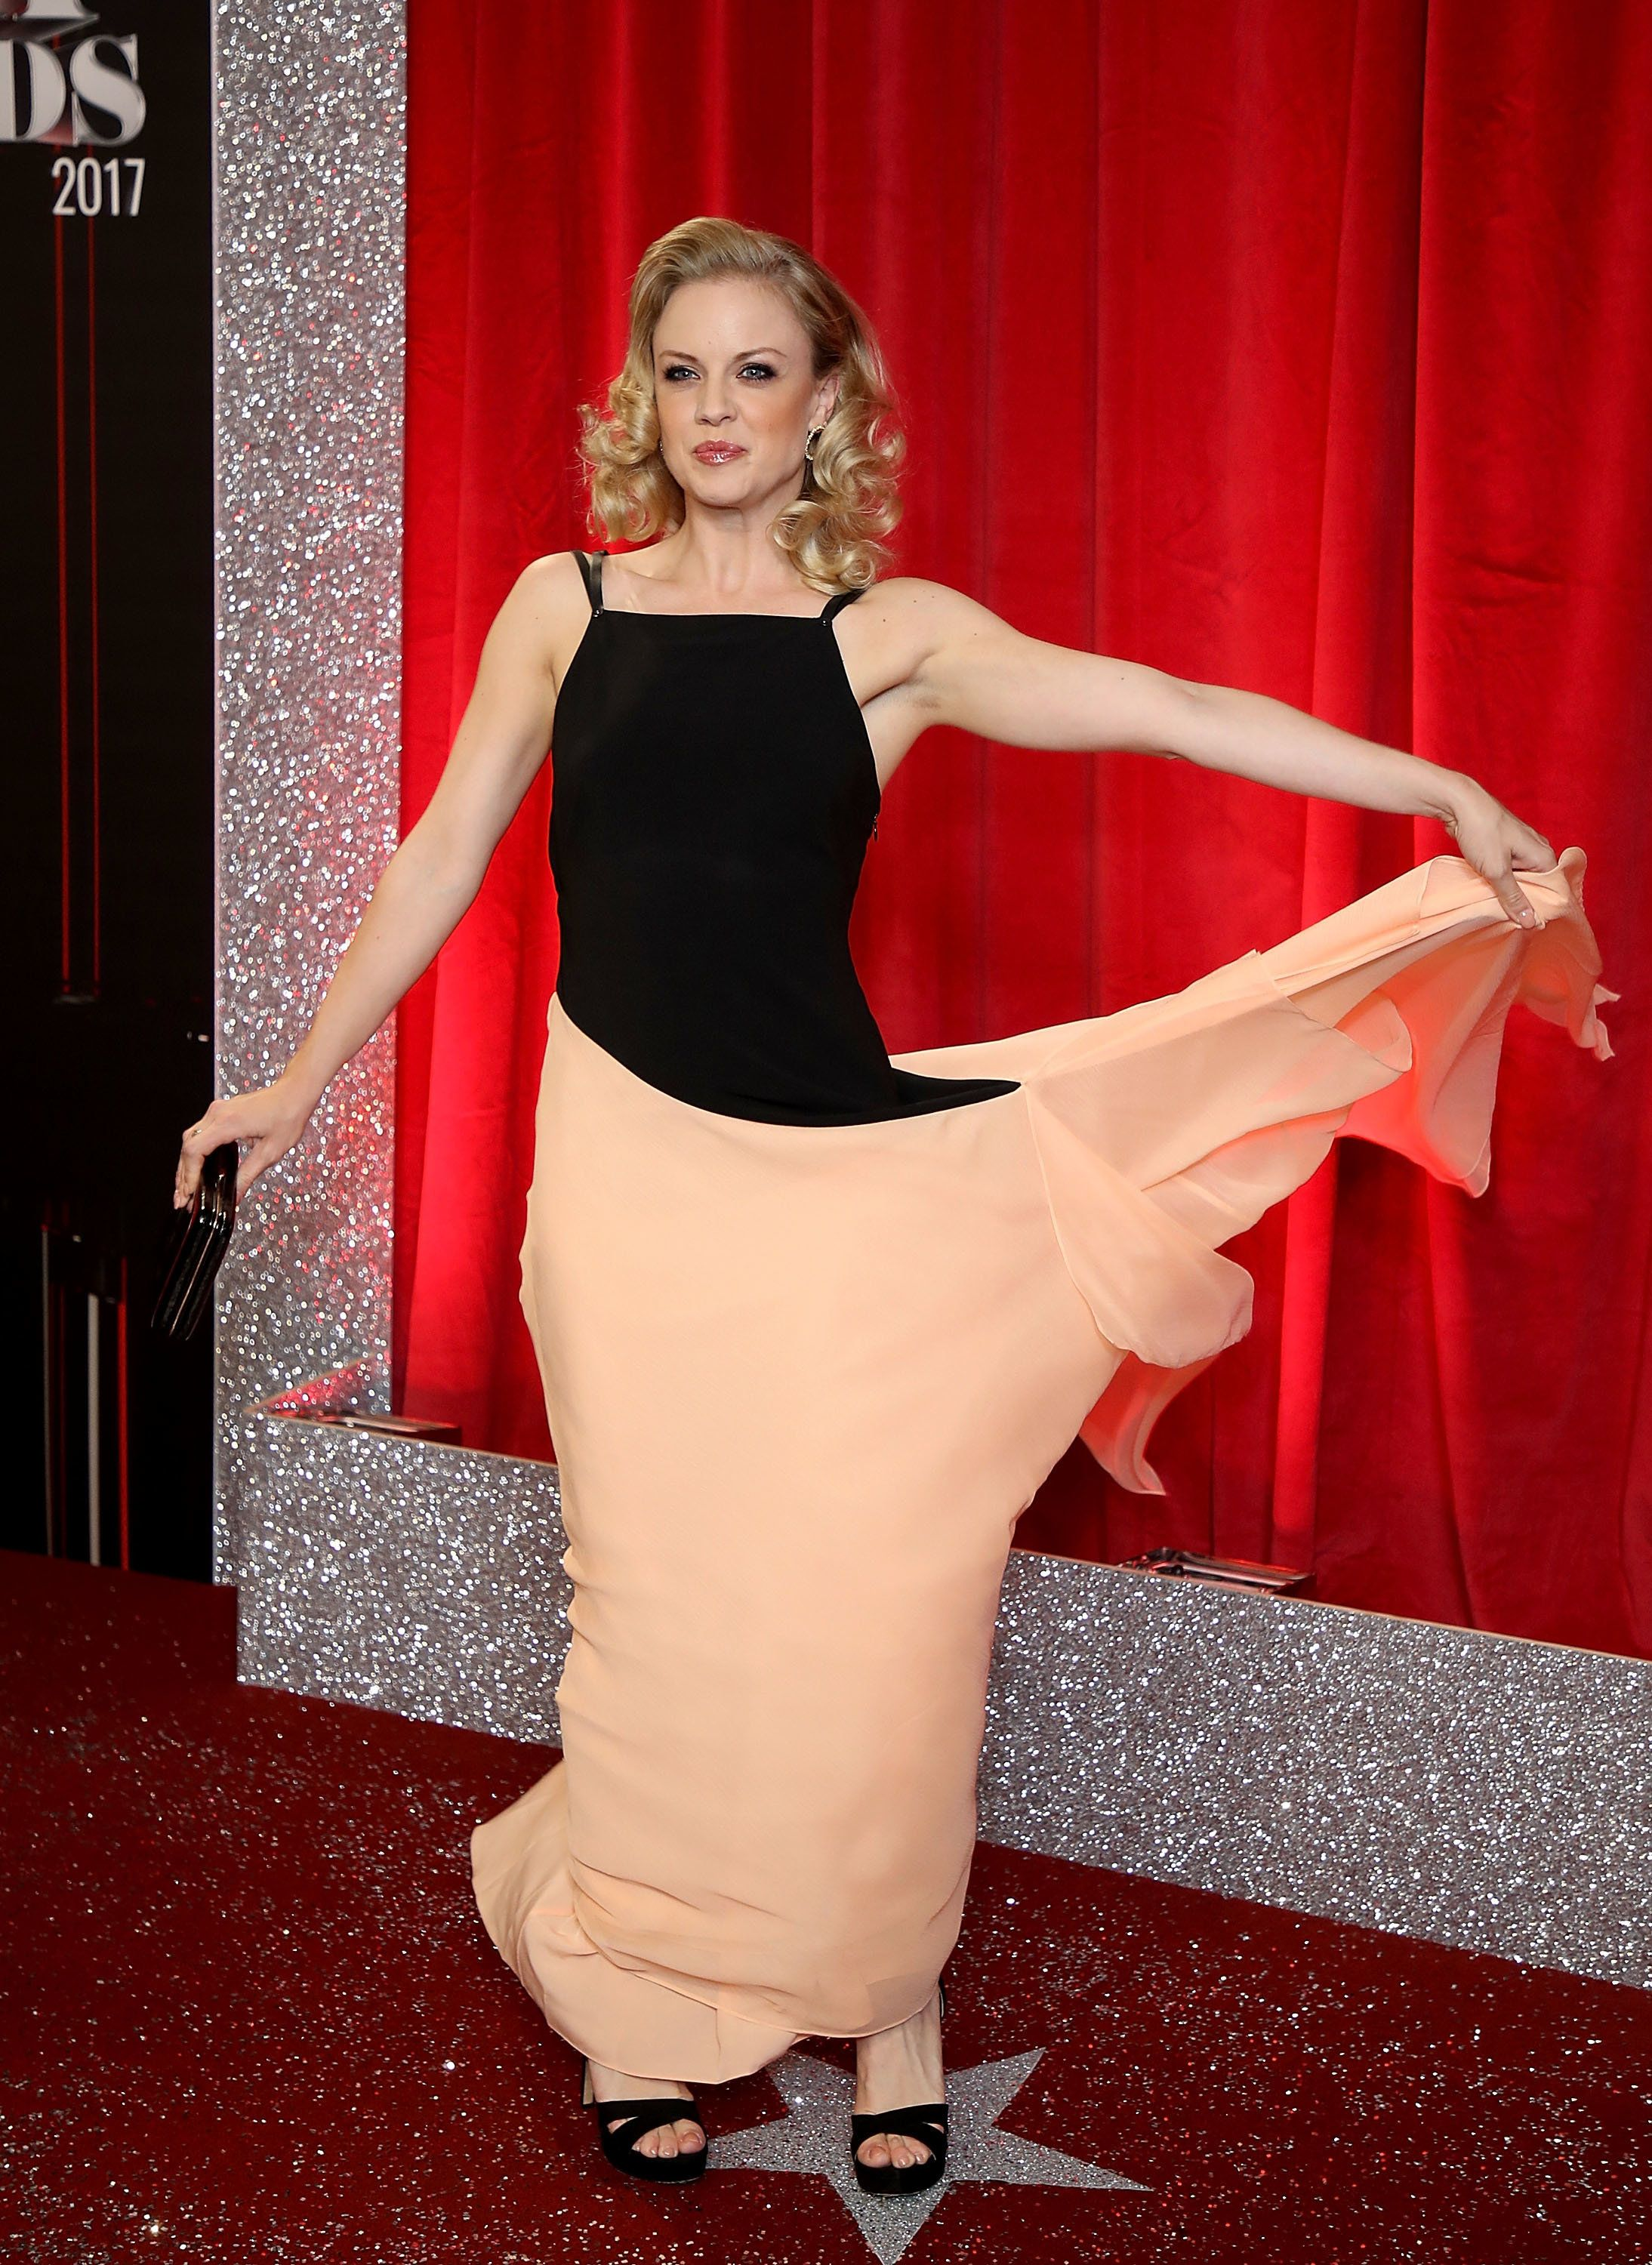 Reigning 'Strictly Come Dancing' Champion Joanne Clifton Announces She's Quit The